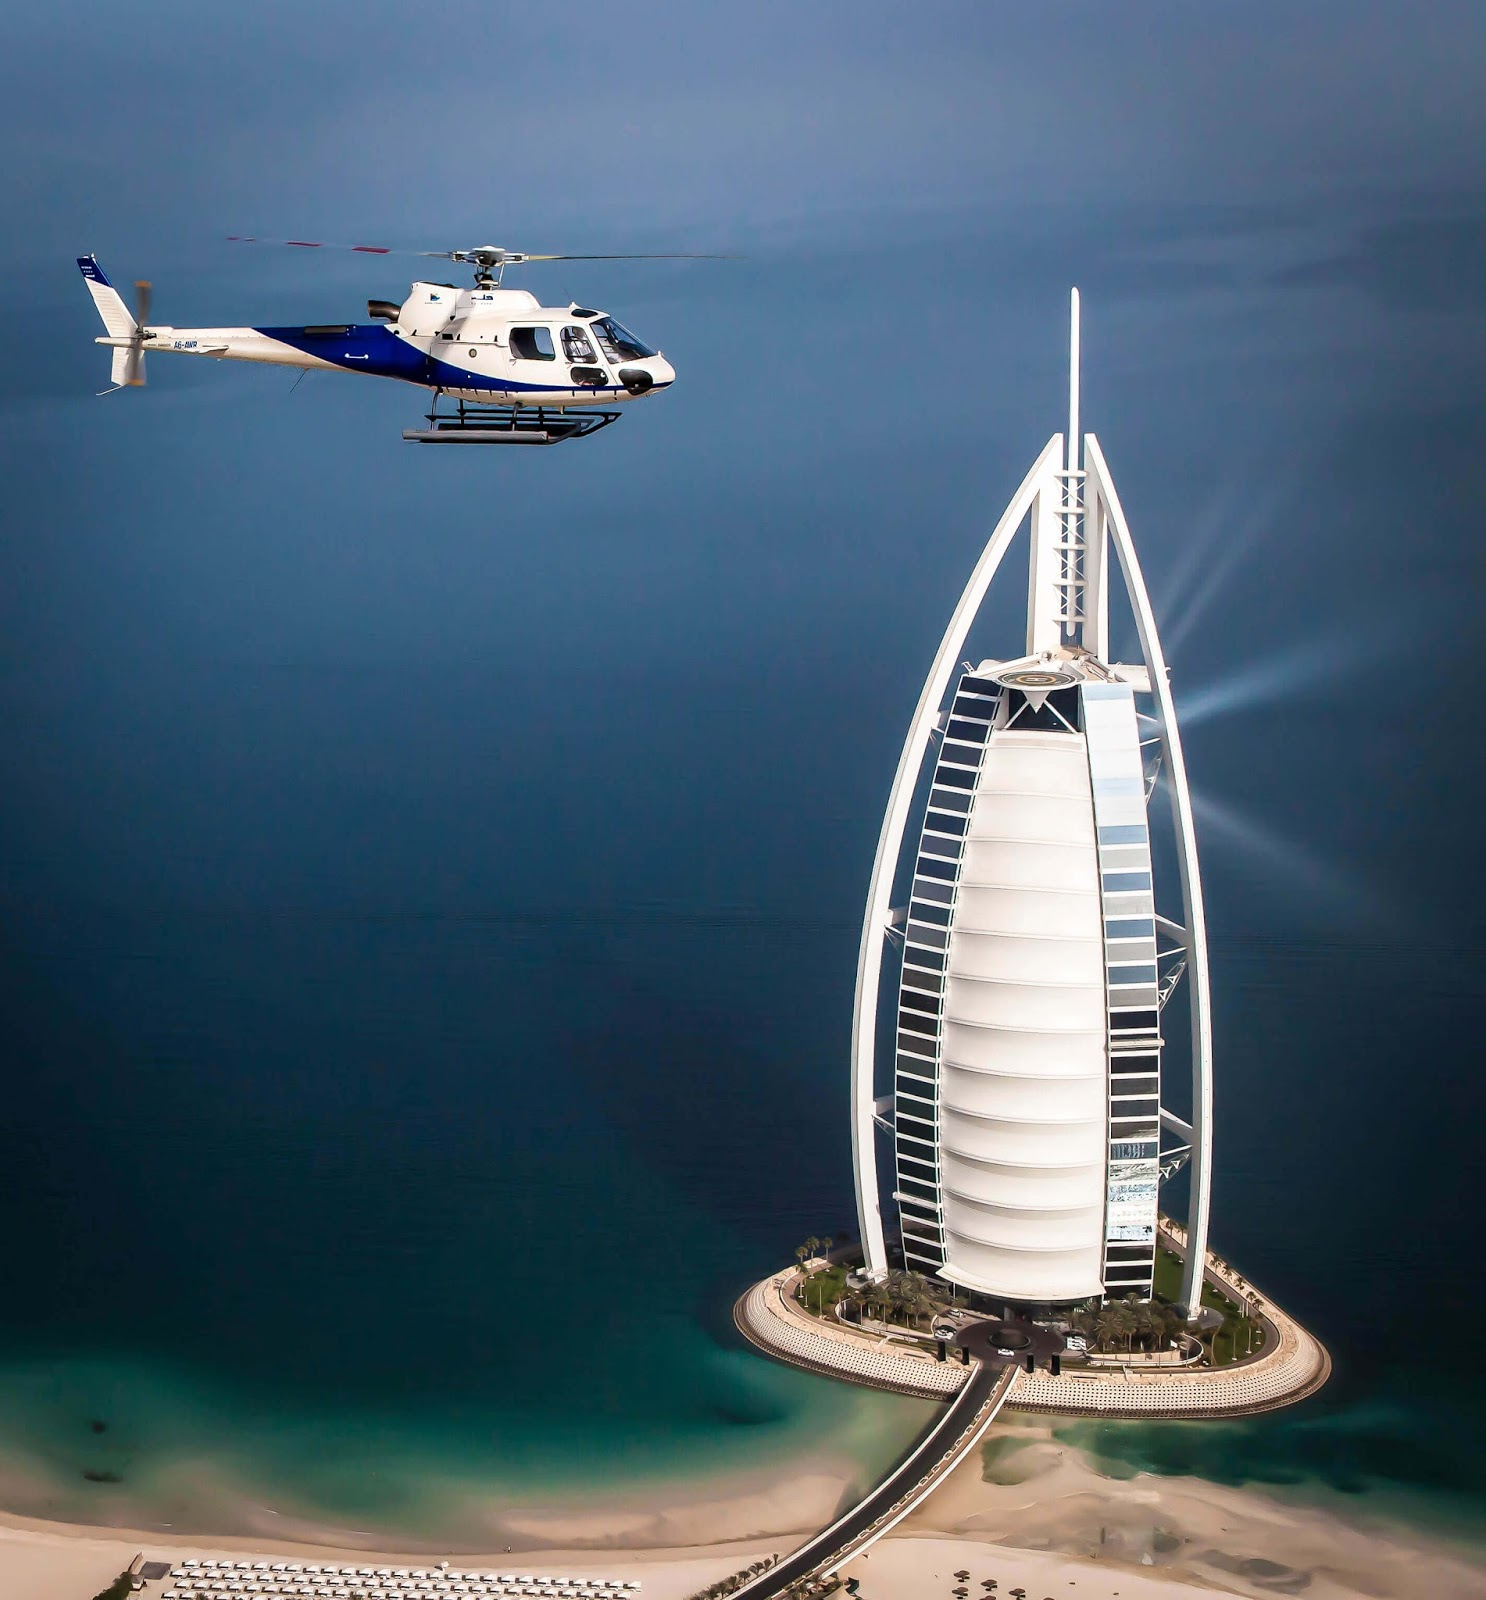 Top Amazing Dubai Attractions Explore Things To Do In Dubai - The 10 most amazing things to see in dubai